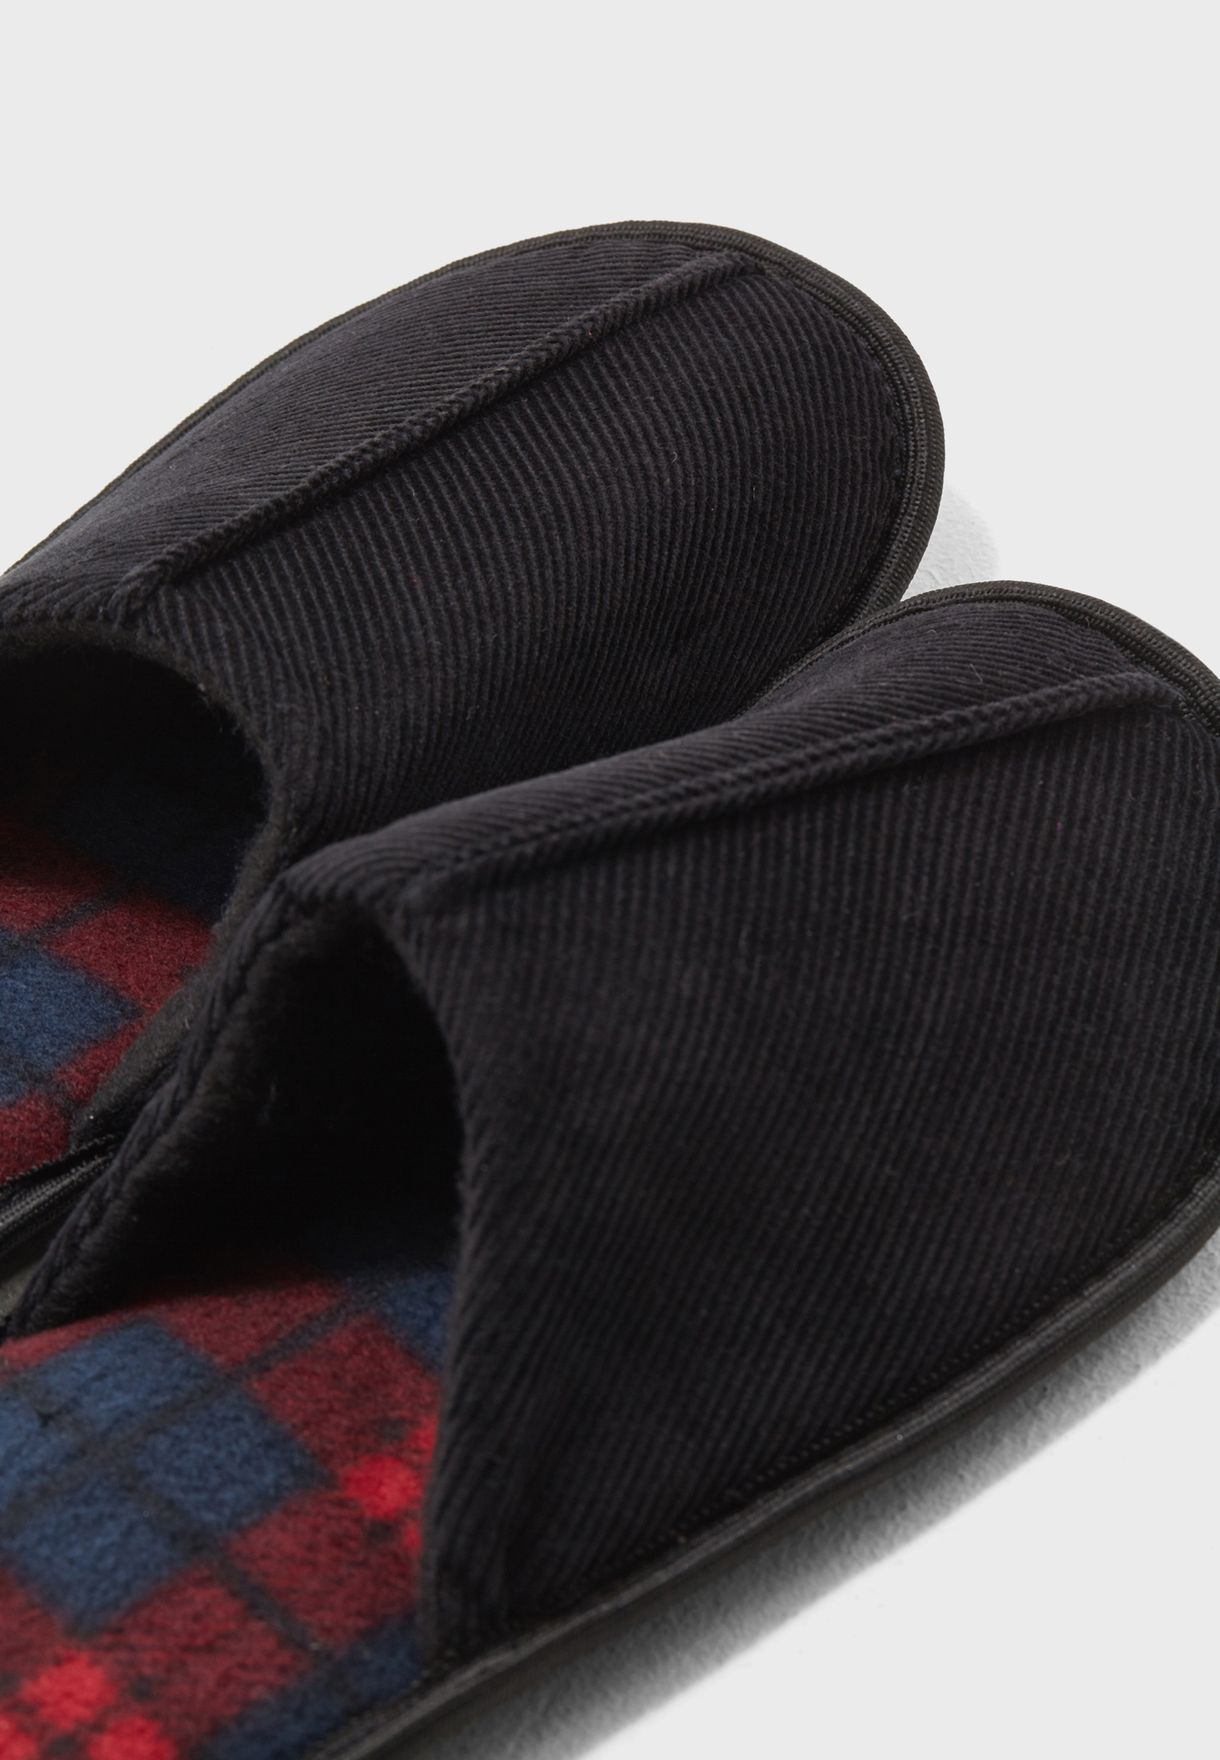 Tace Bedroom Slippers